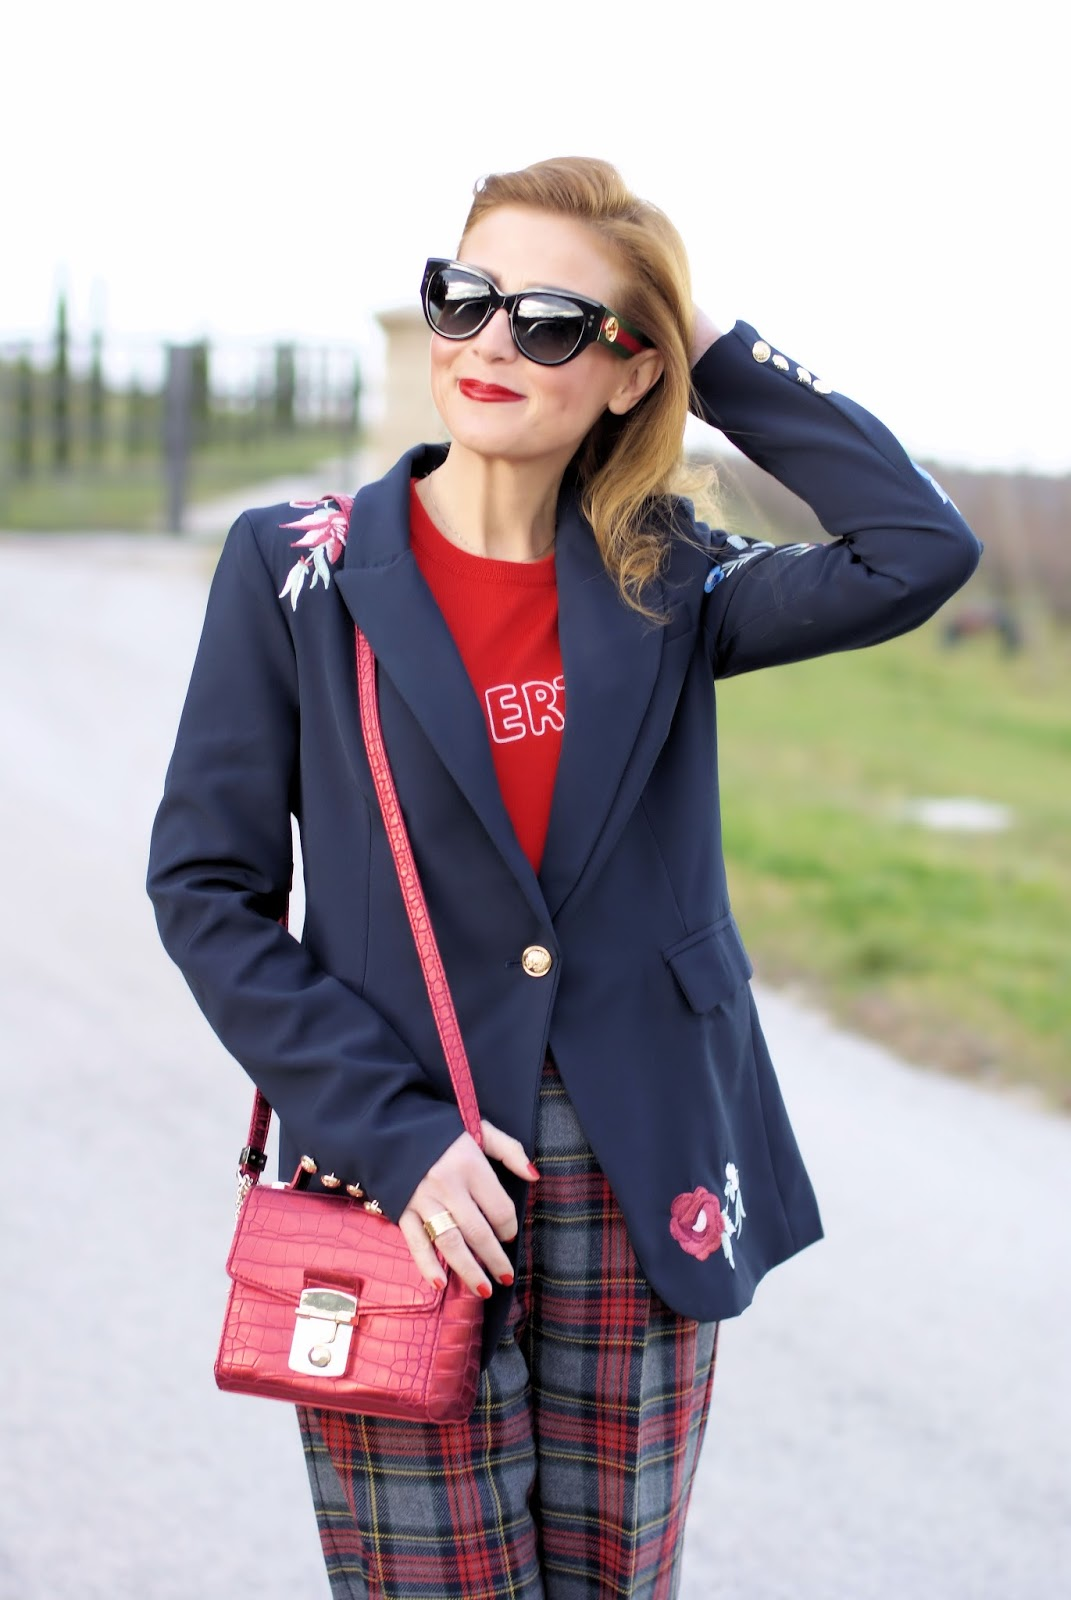 Zaful embroidered blazer and Gucci sunglasses on Fashion and Cookies fashion blog, fashion blogger style